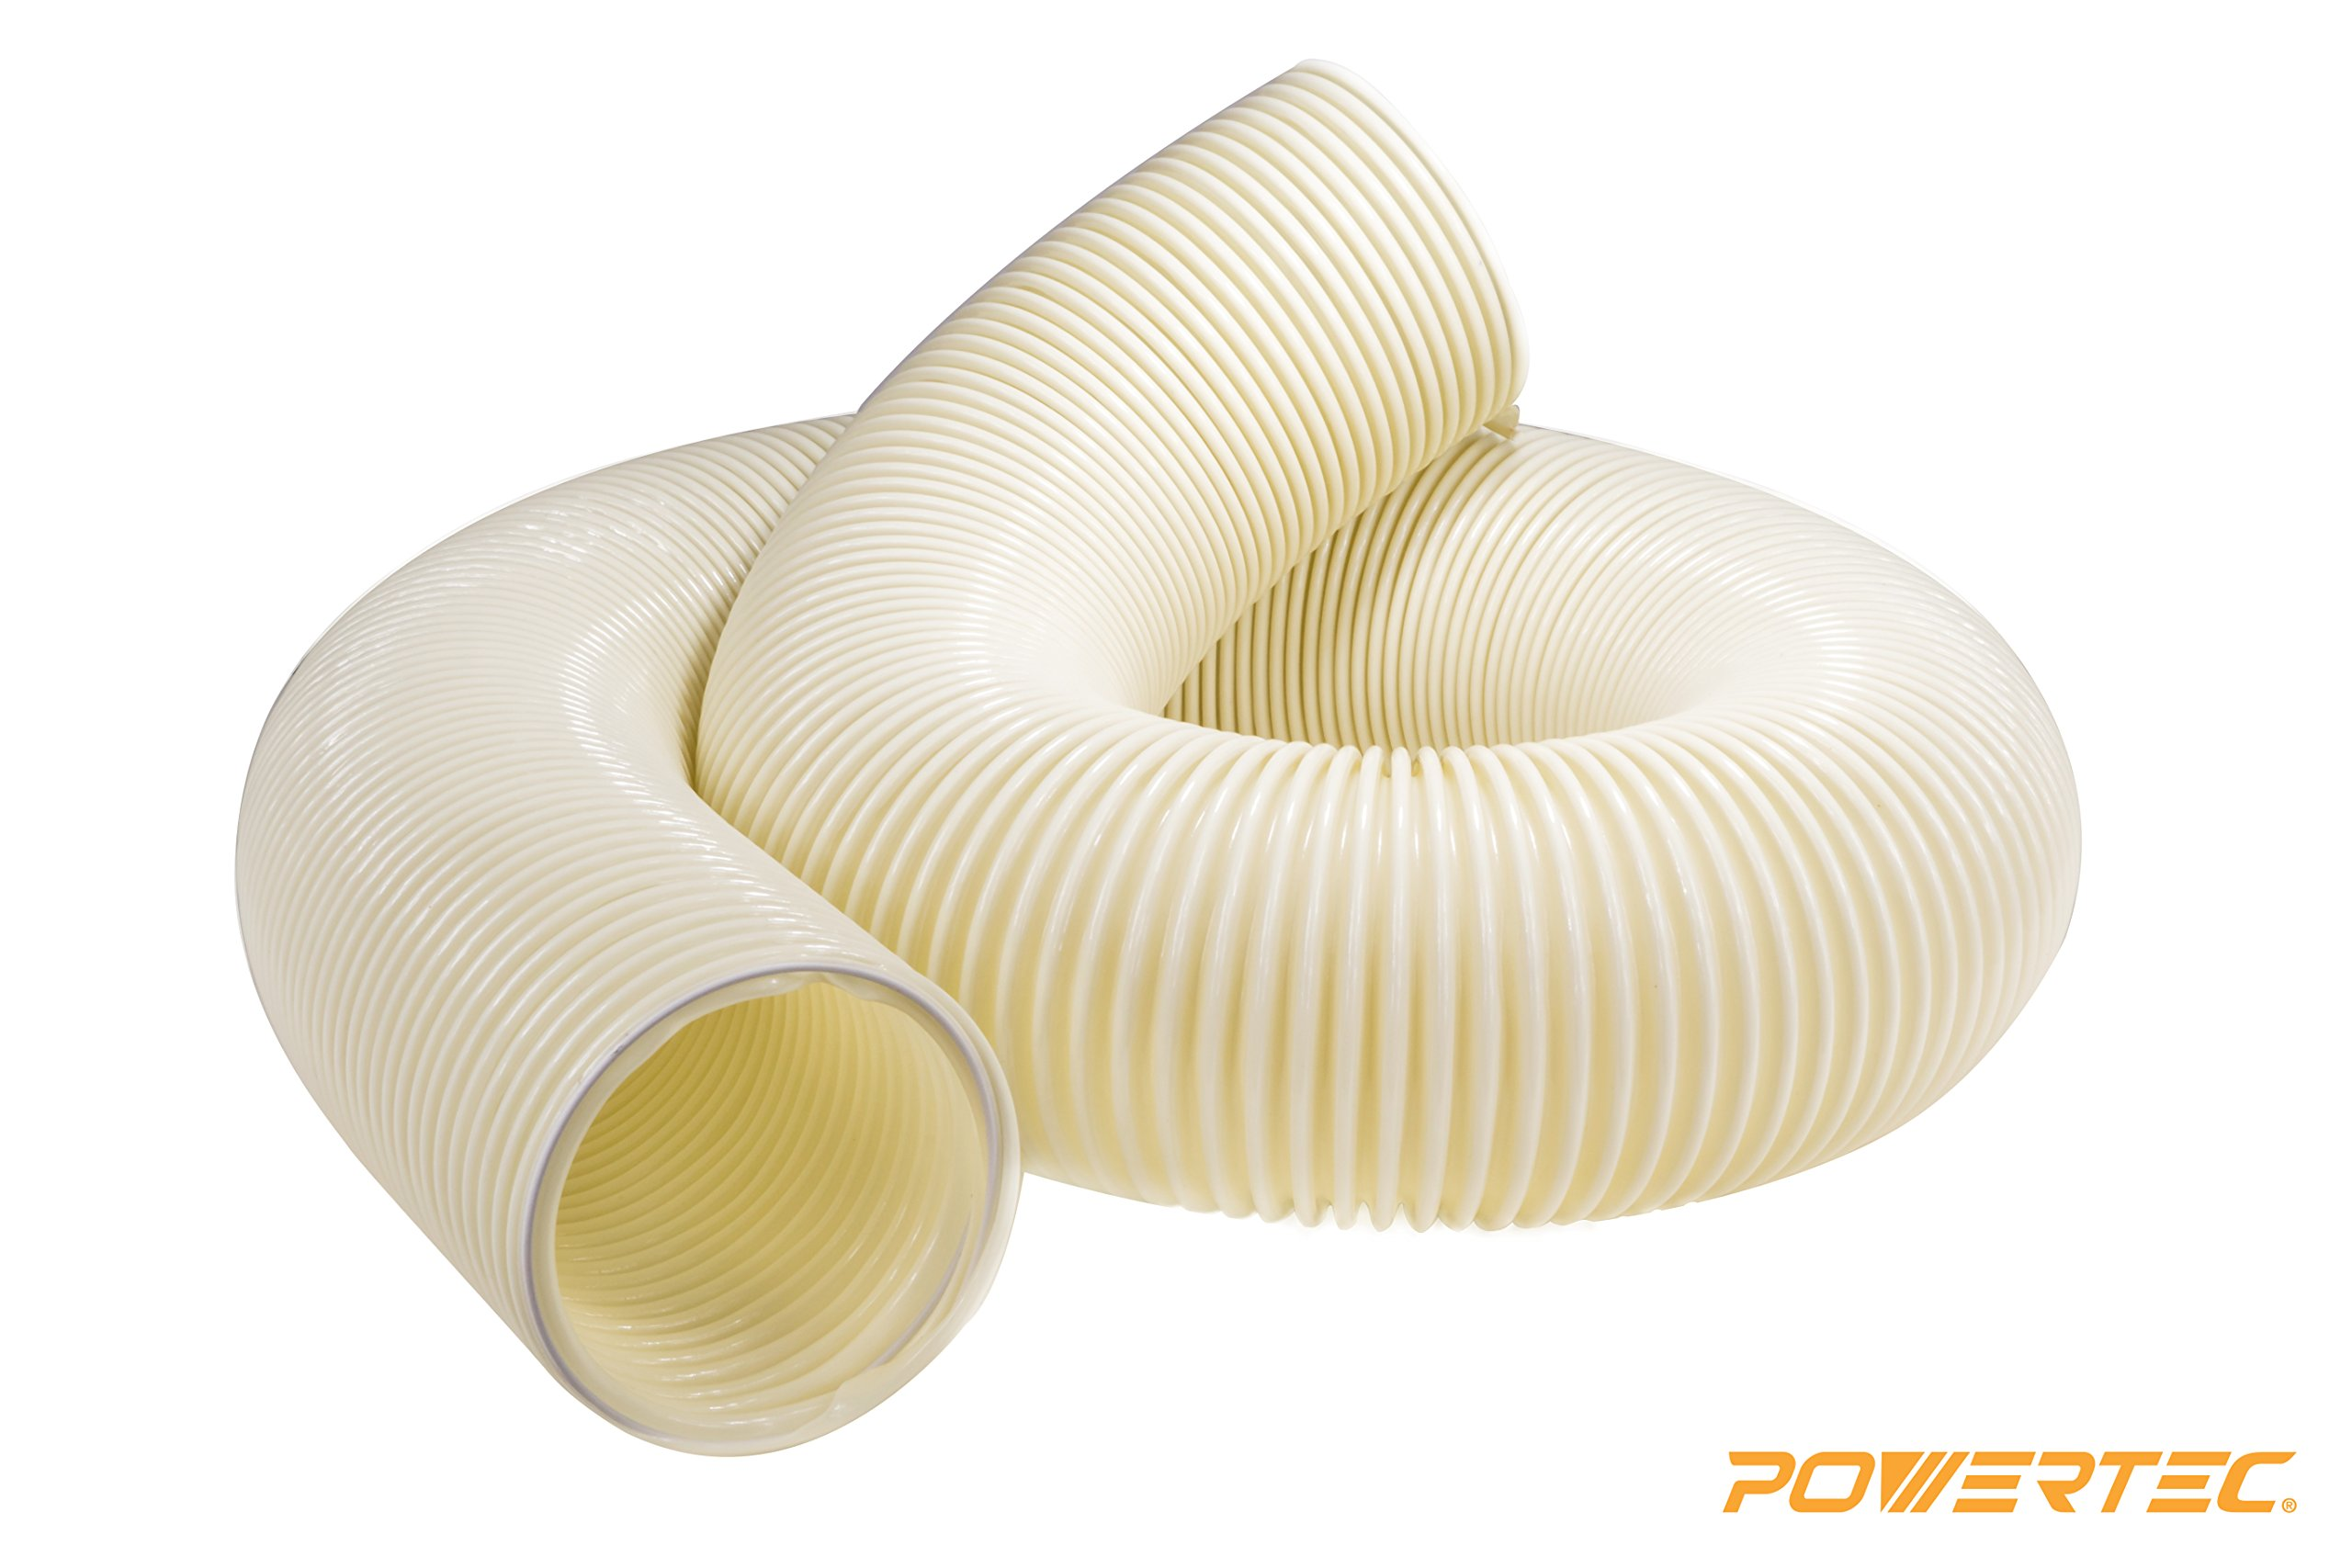 POWERTEC 70160 Heavy Duty Anti Static PVC Flexible Dust Collection Hose, 4-Inch x 10-Foot